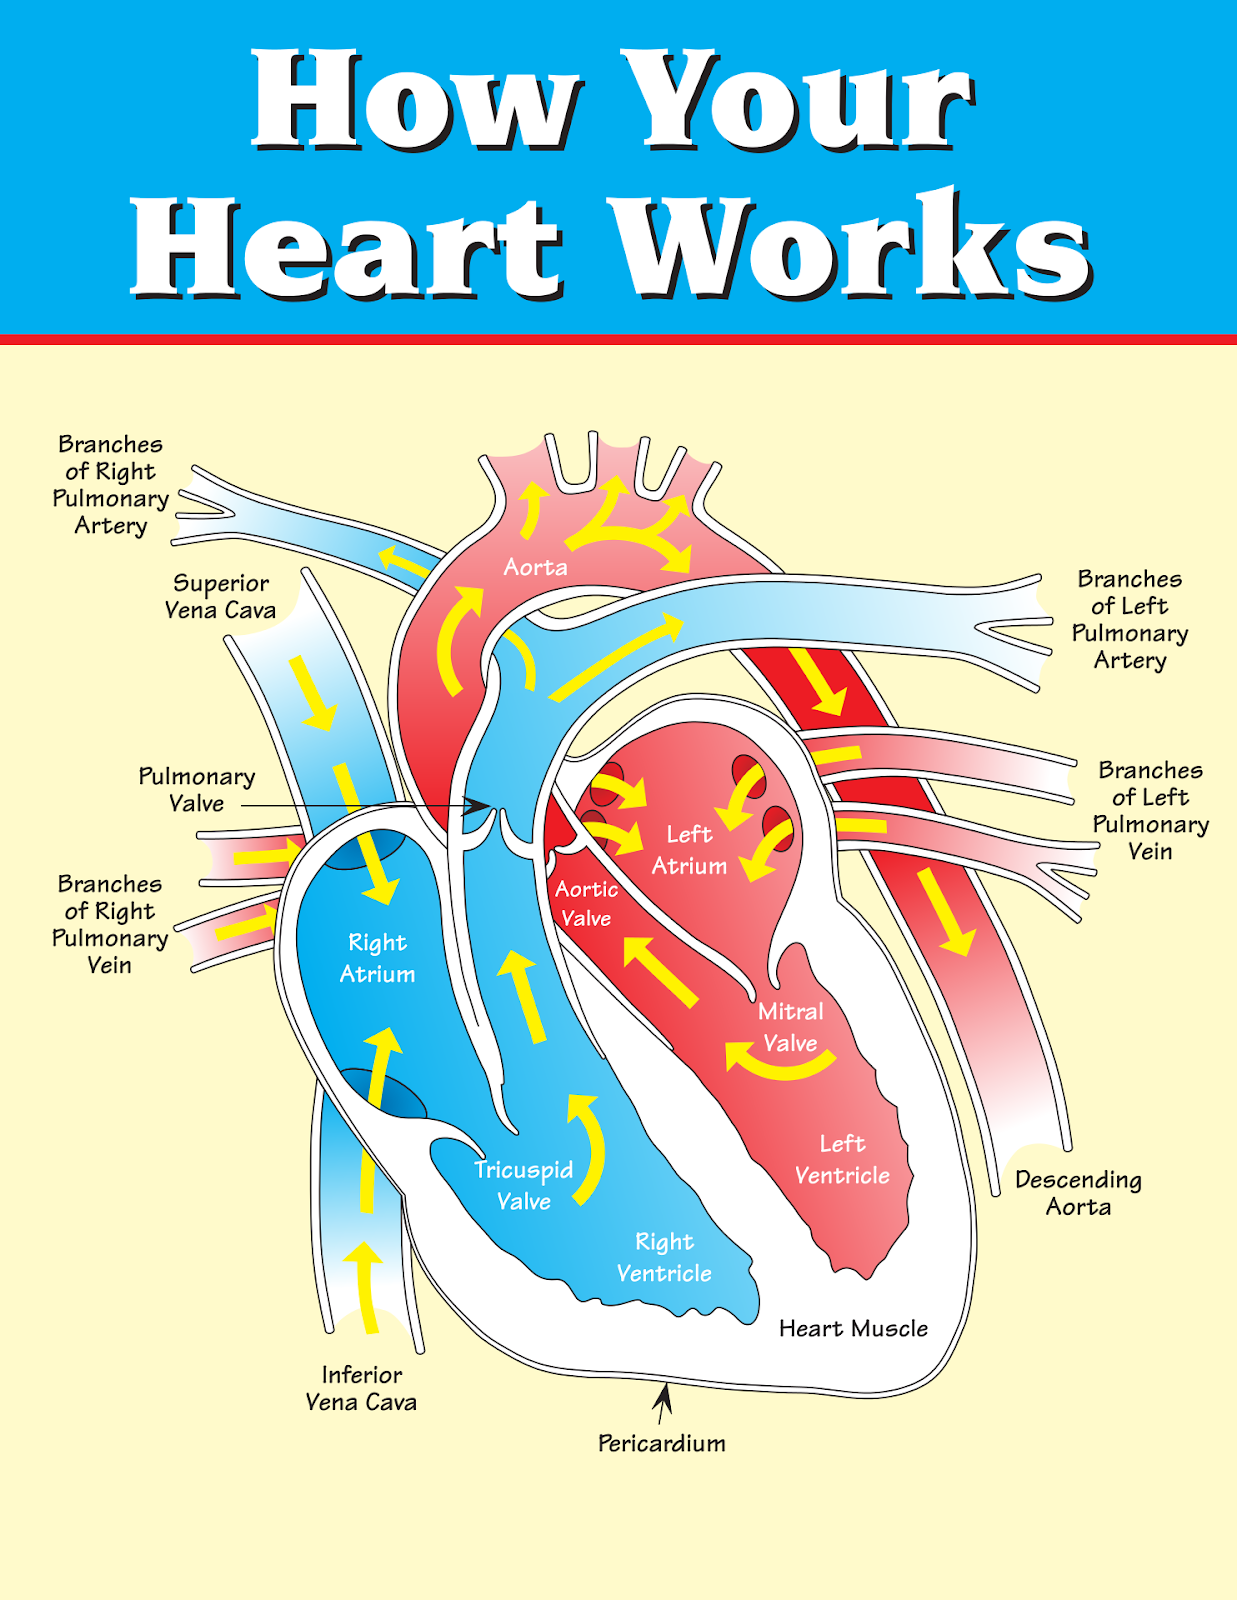 hight resolution of Promoting Success: 10 Circulatory System Activities and Projects for Kids